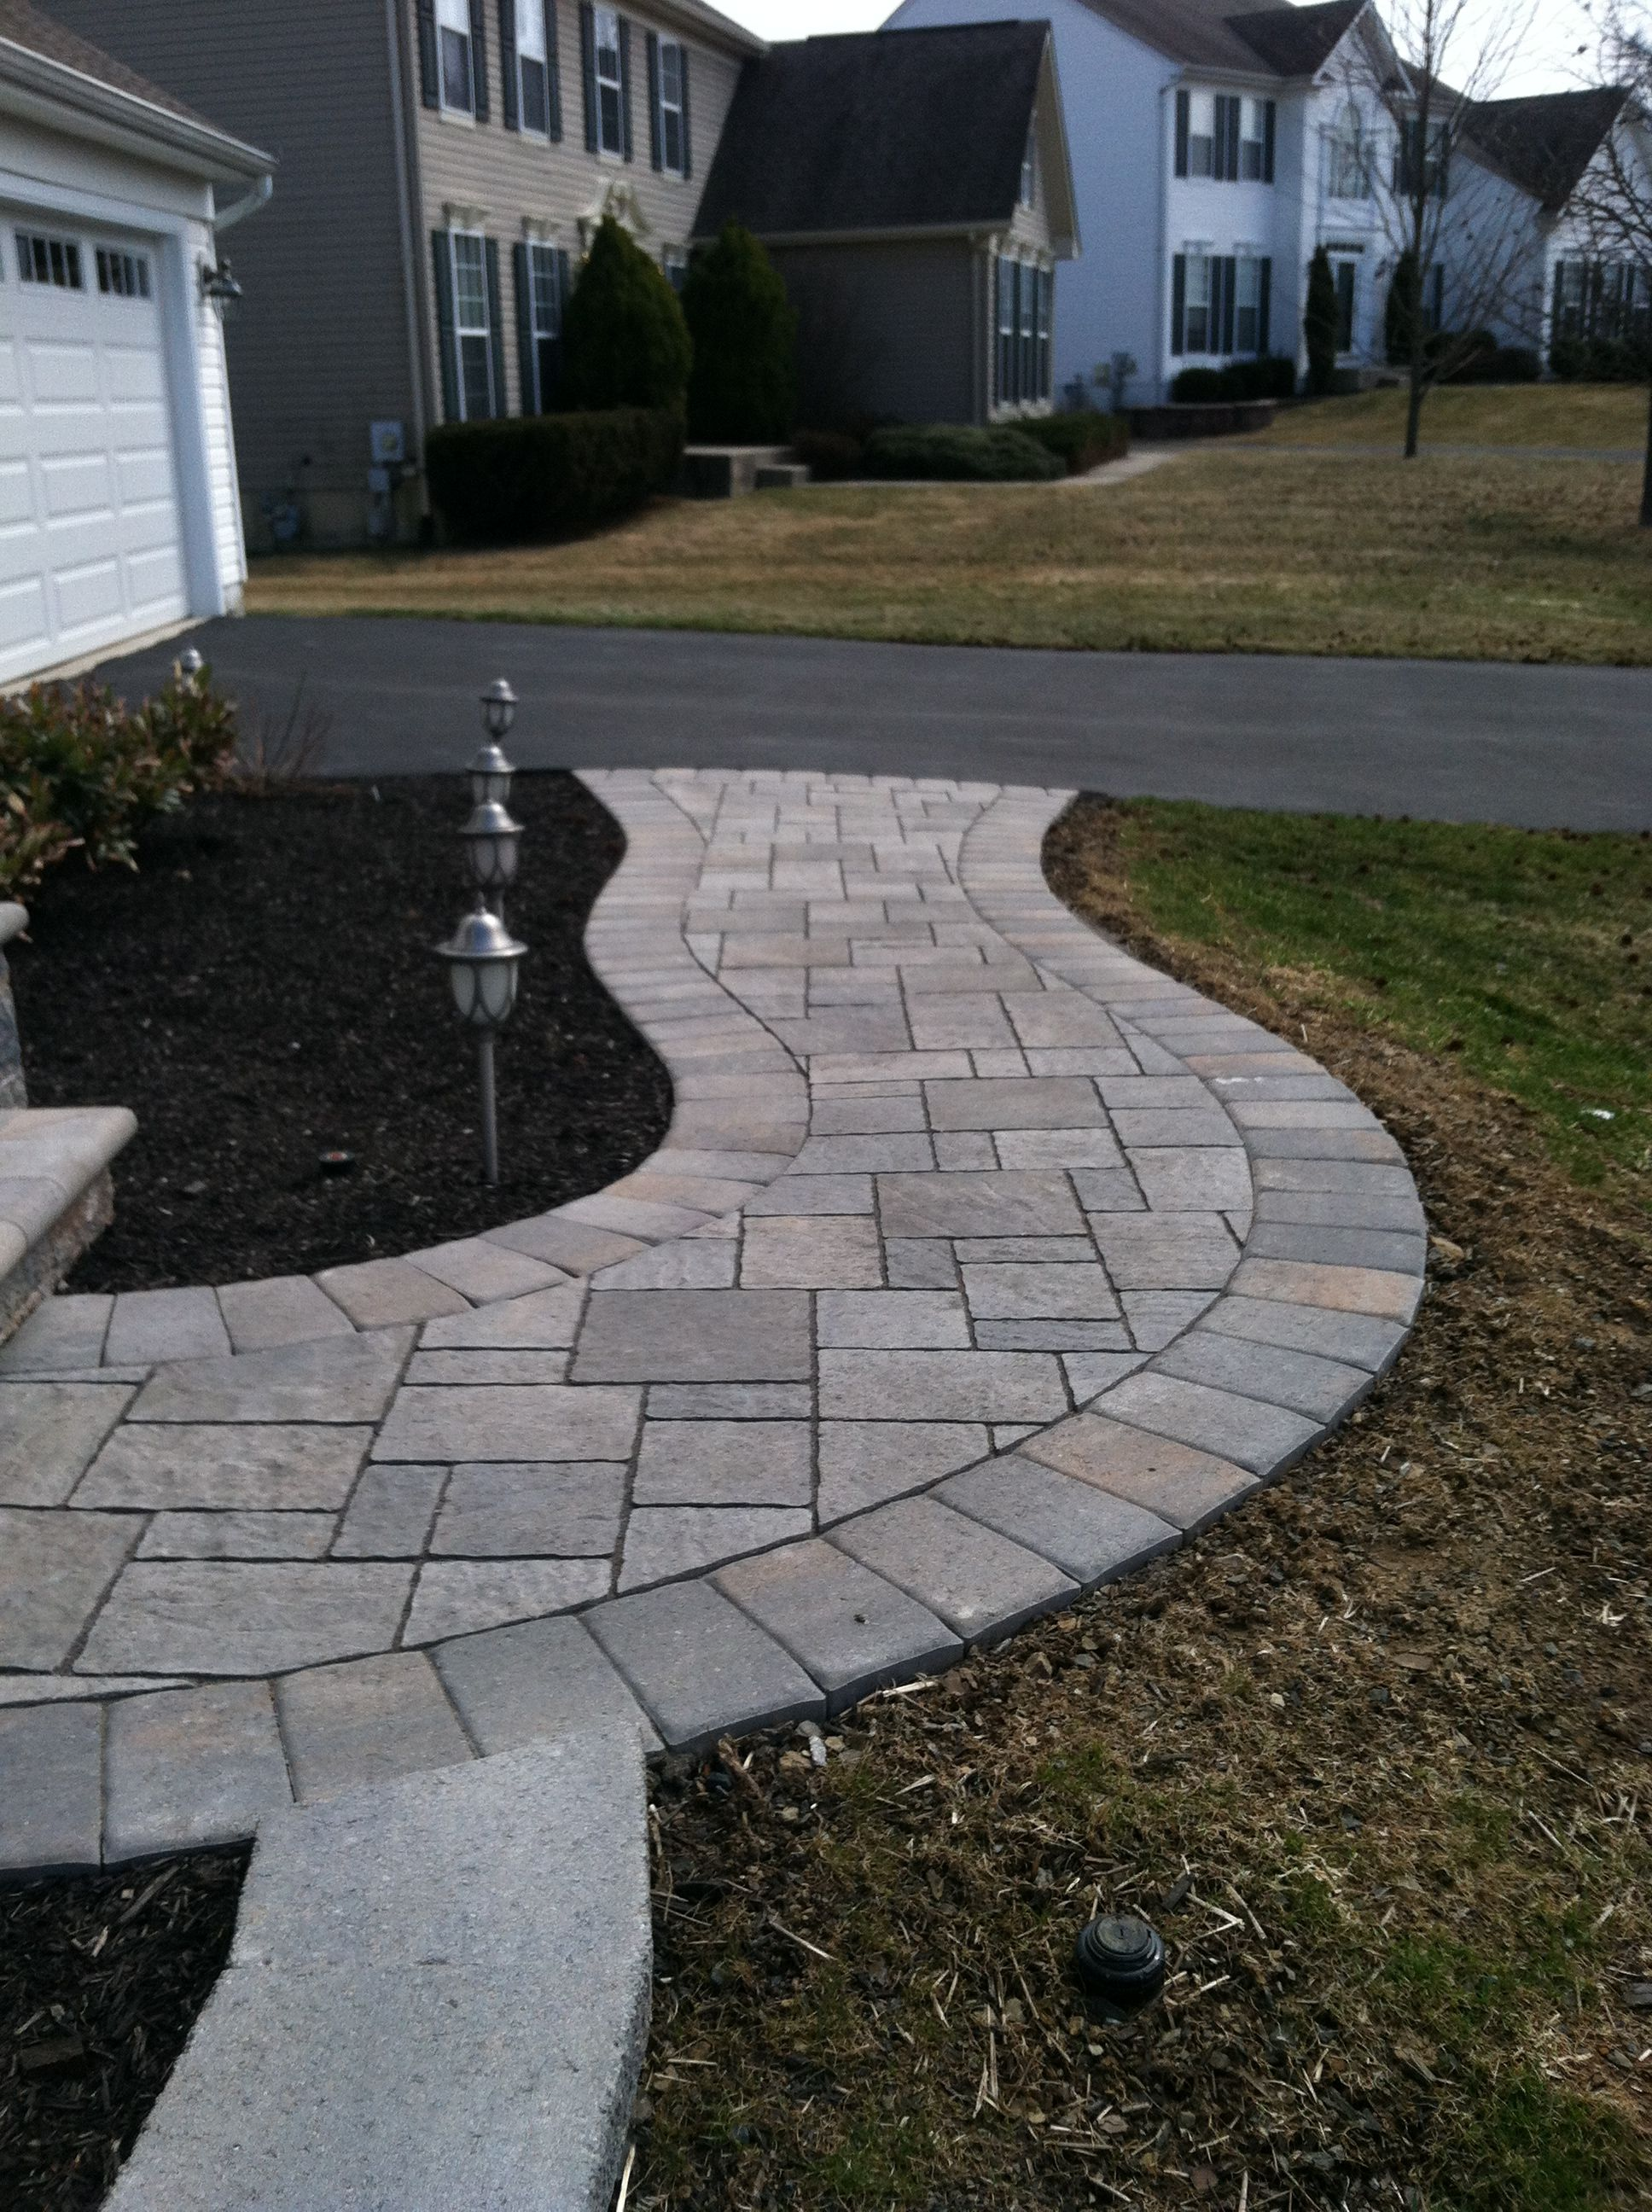 Hardscape Walkway From Entrance To Driveway #walkway